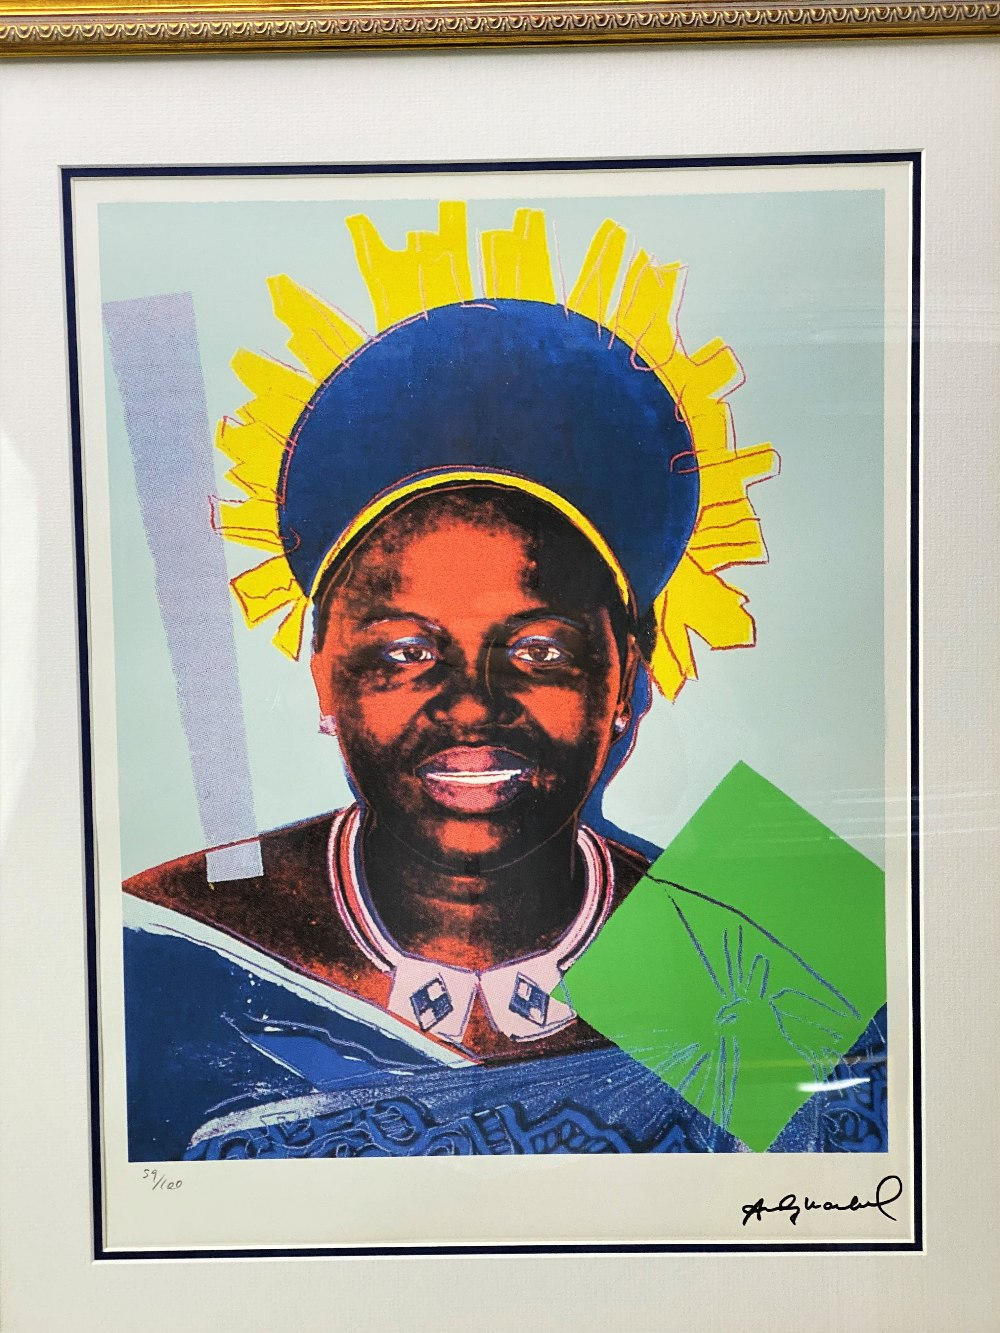 """Andy Warhol (1928-1987) """"Reigning Queens"""" Numbered Lithograph 59/100, Ornate Framed. - Image 2 of 6"""